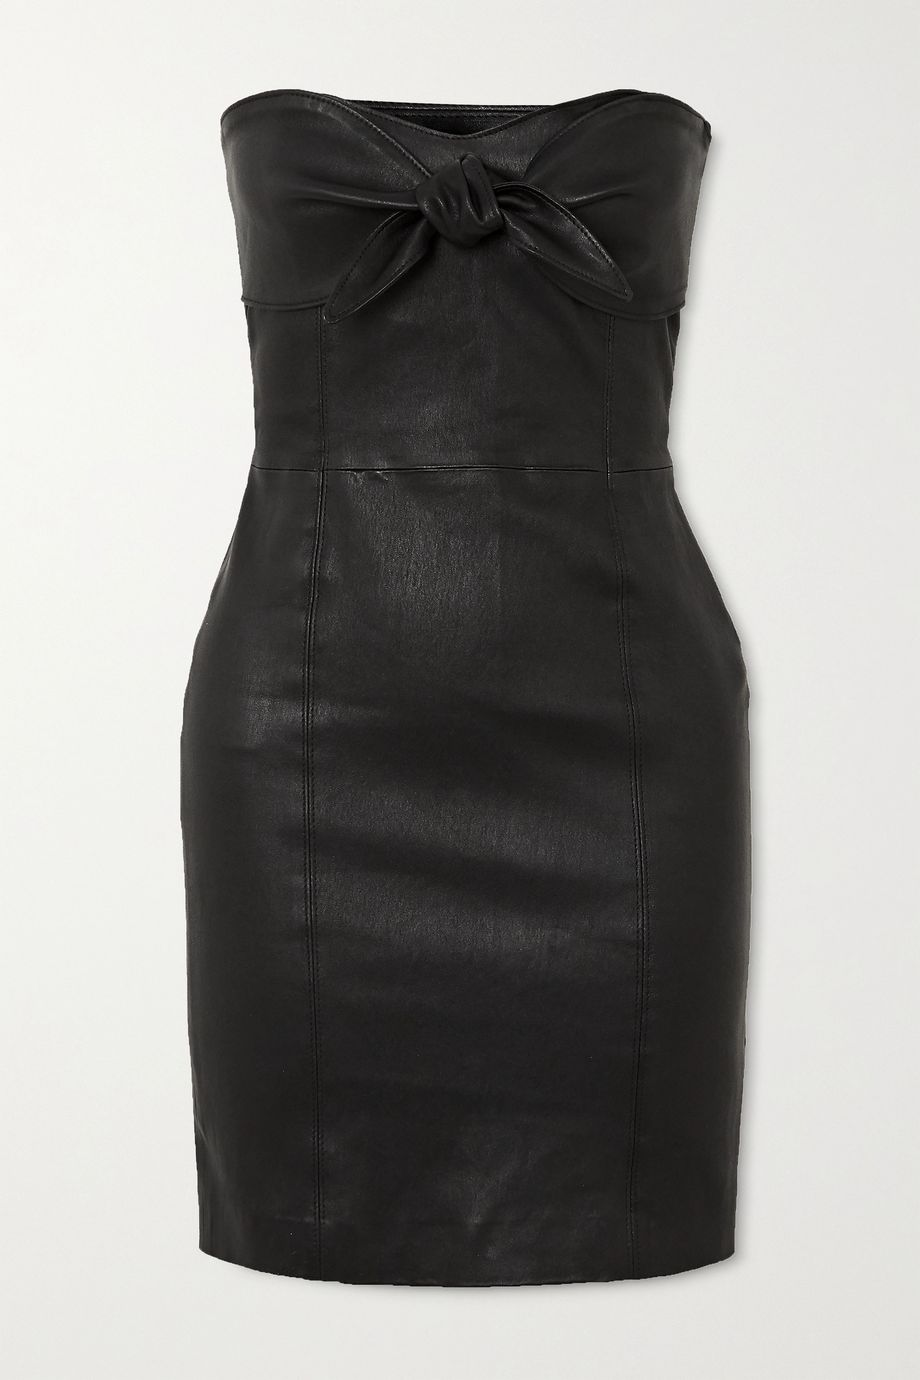 SPRWMN Strapless knotted leather mini dress